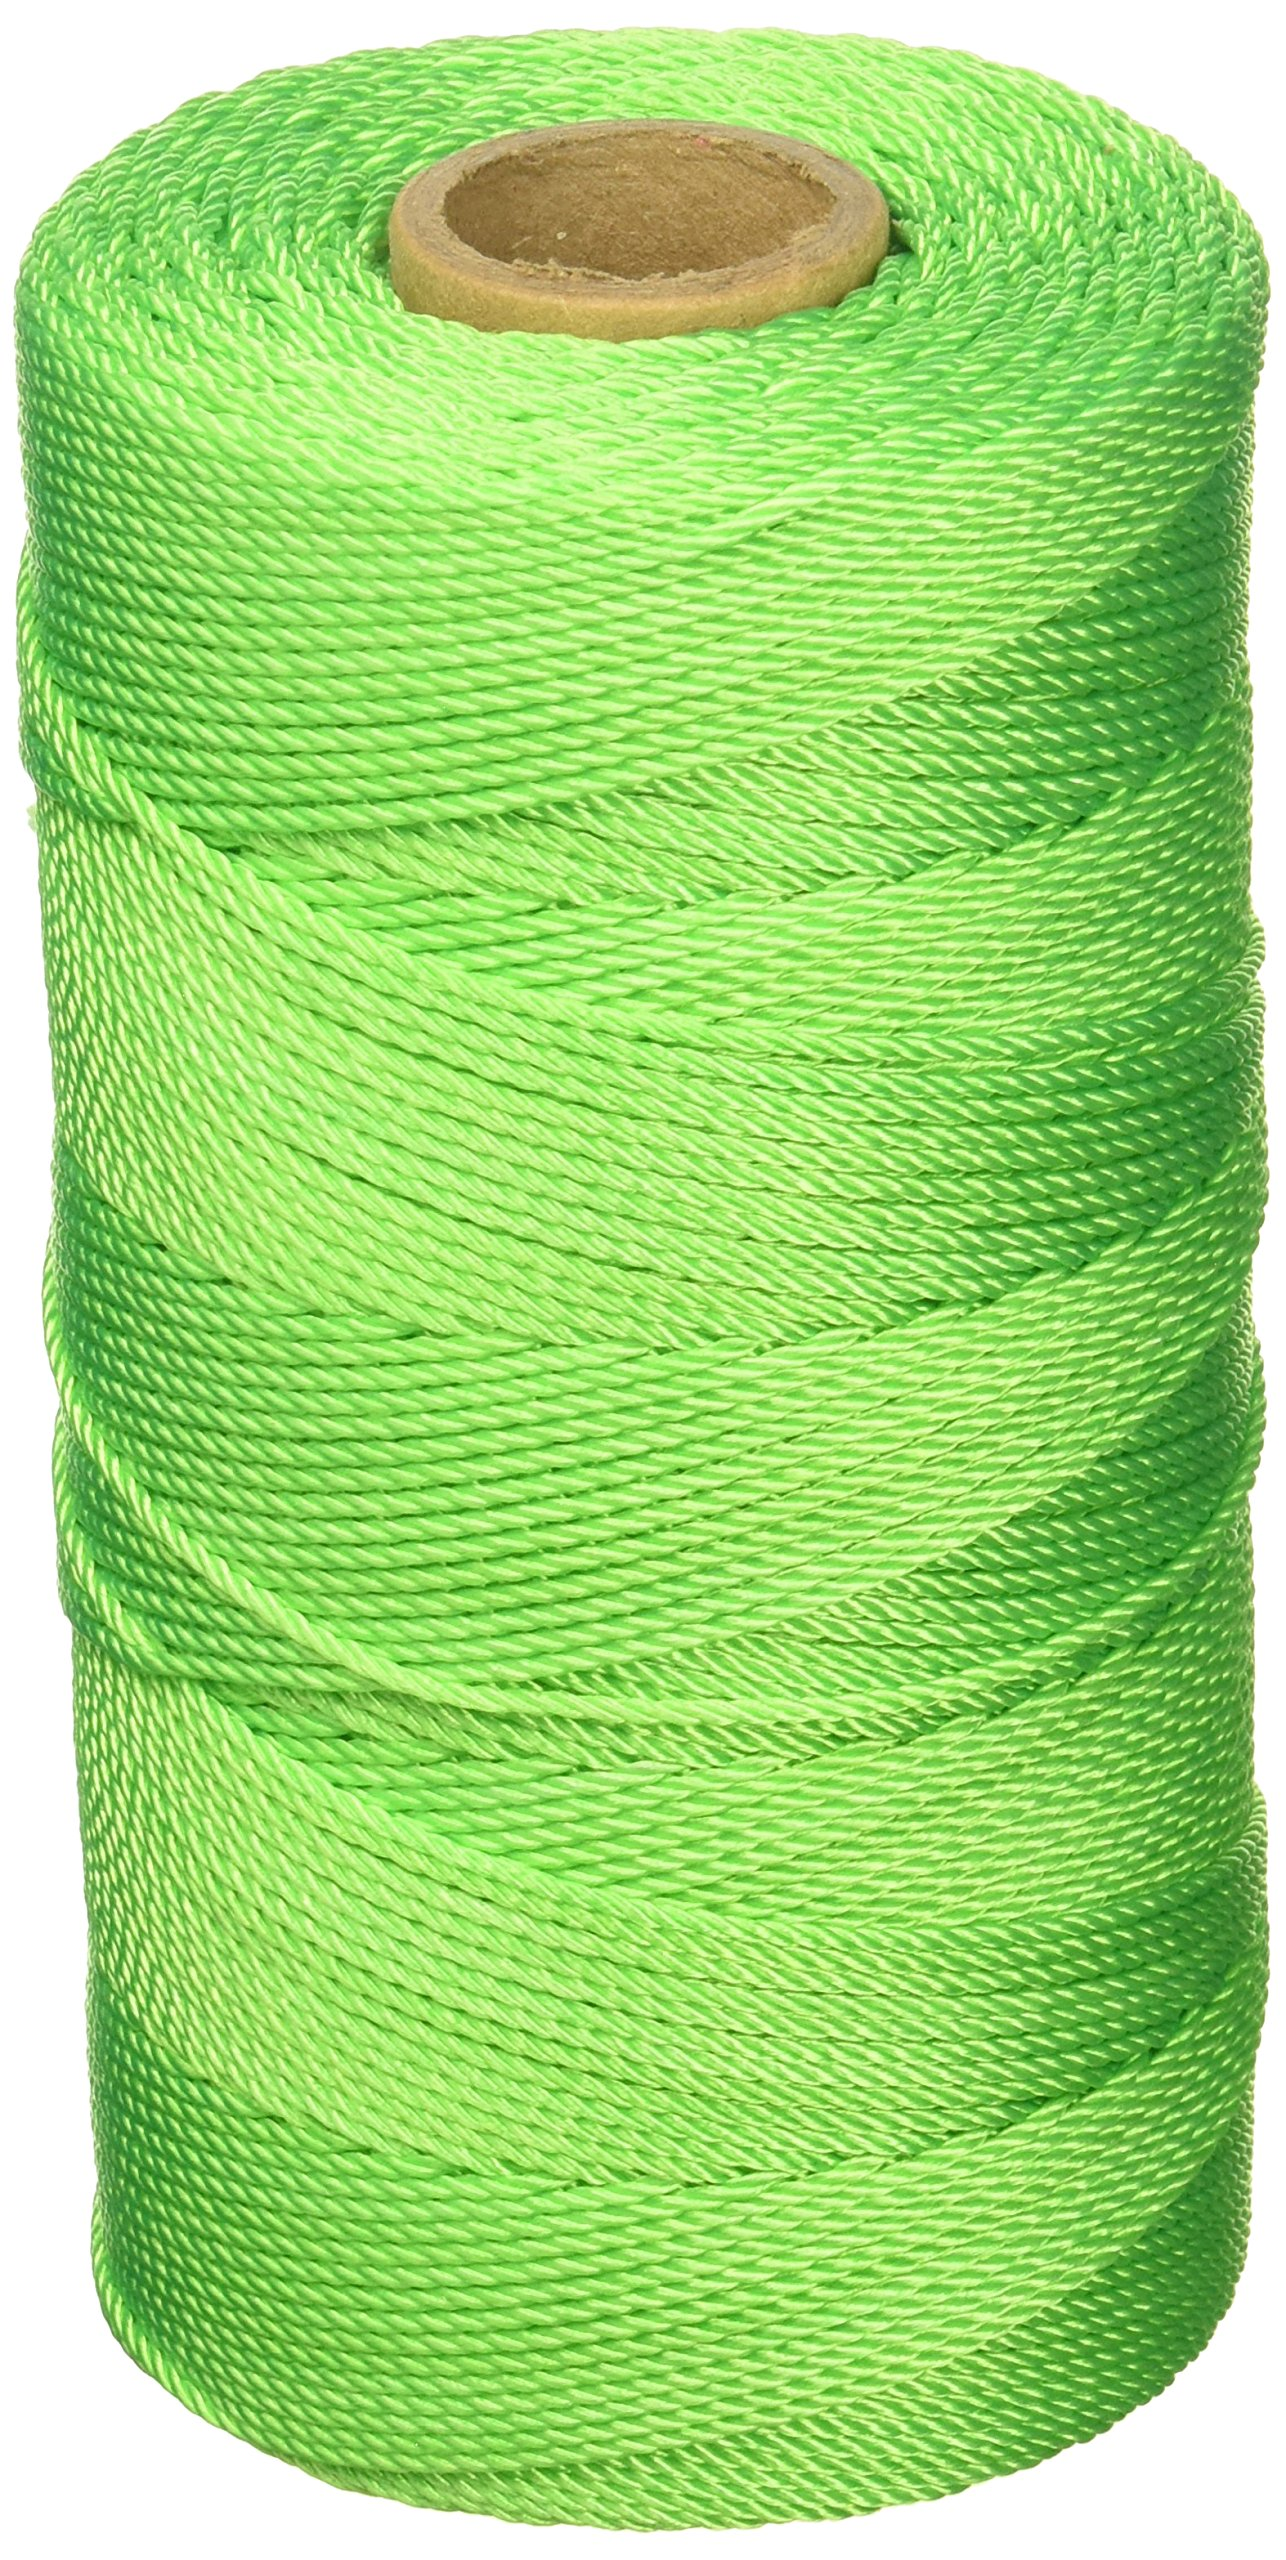 Keson GT1090 18 Gauge Twisted Nylon Mason Twine, Green, 1,090-Foot